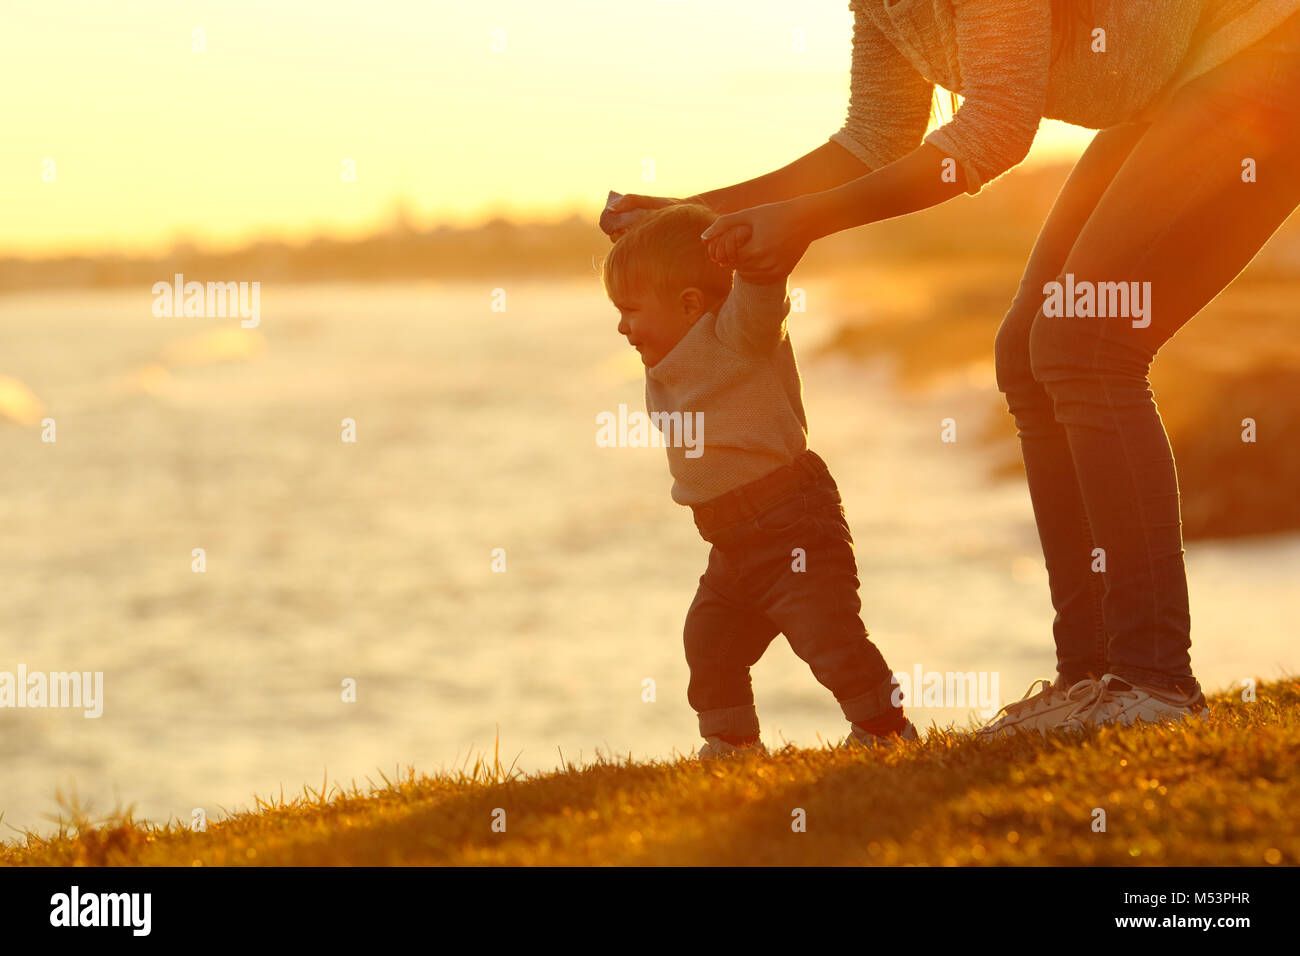 Backlight silhouette of a confident baby learning to walk and his mom helping him at sunset - Stock Image